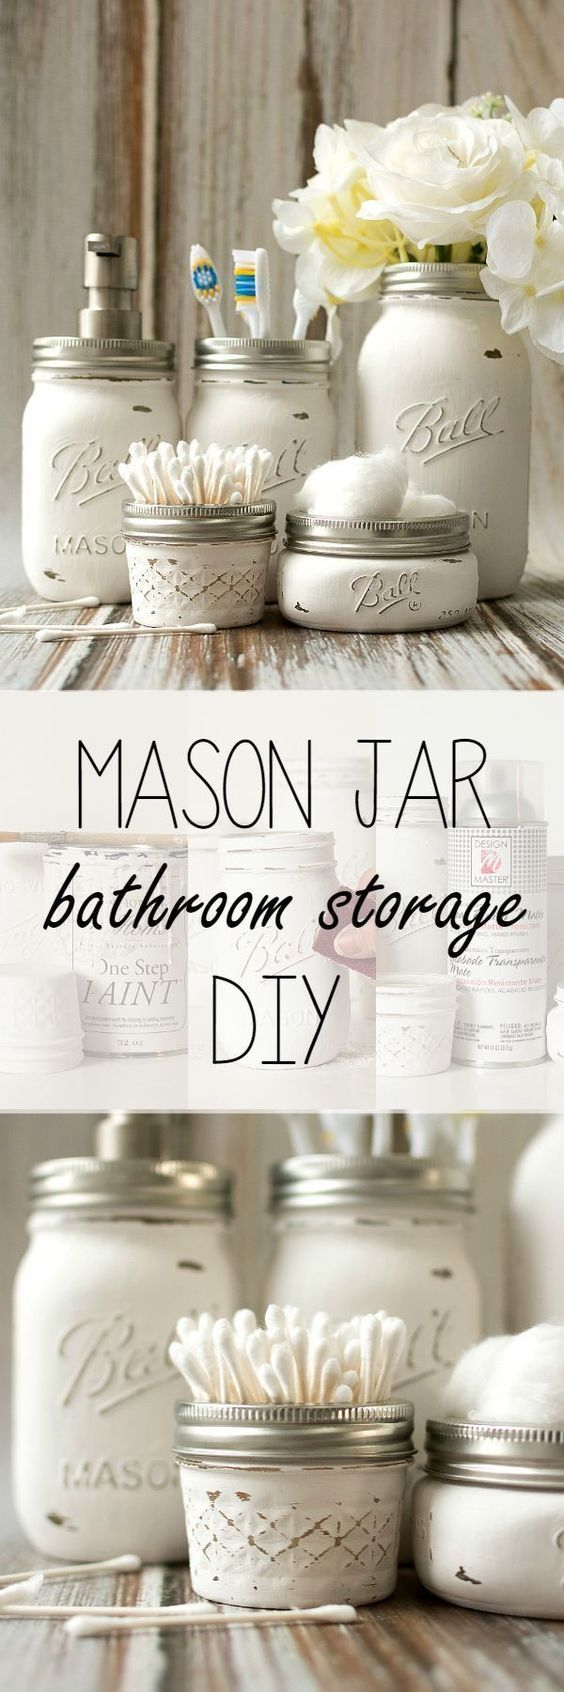 How to's : Are you in search of some awesome mason jar crafts? This list has 25 incredible craft projects from bathroom accessories to garden solar lights, that you can DIY easily using Mason Jars or jars from your recycling box! So for a huge list of easy diy crafts, click through & get ready to start making! #crafts #diy #masonjars #roundup #easycrafts